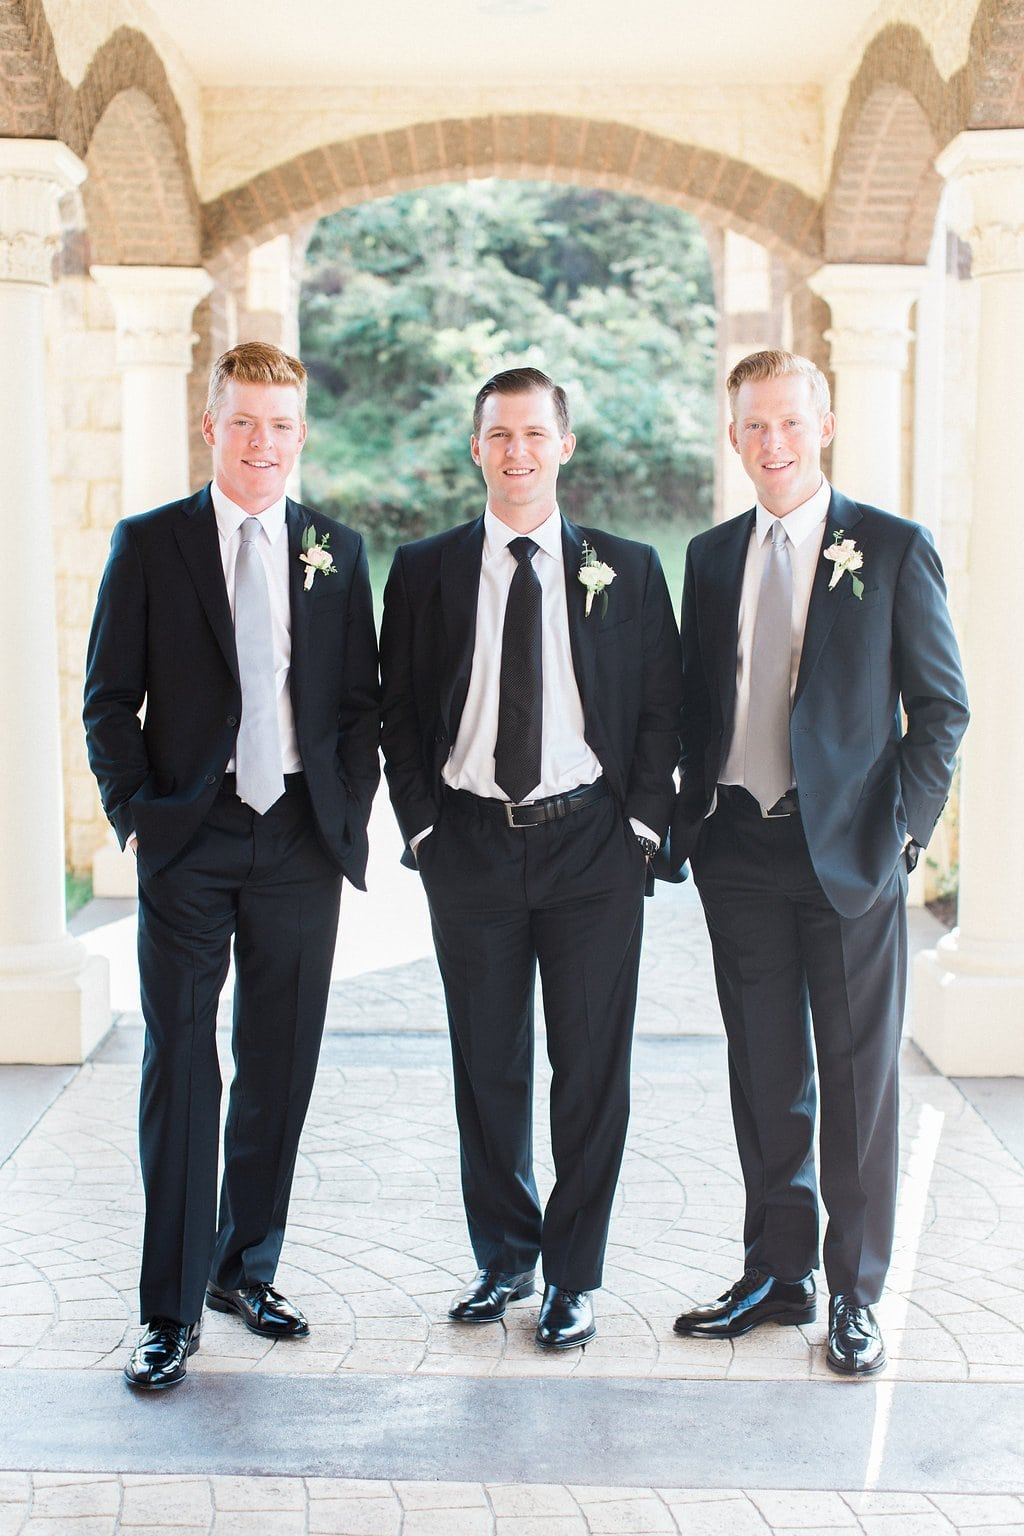 Groom with his Groomsmen outside the church before the wedding ceremony